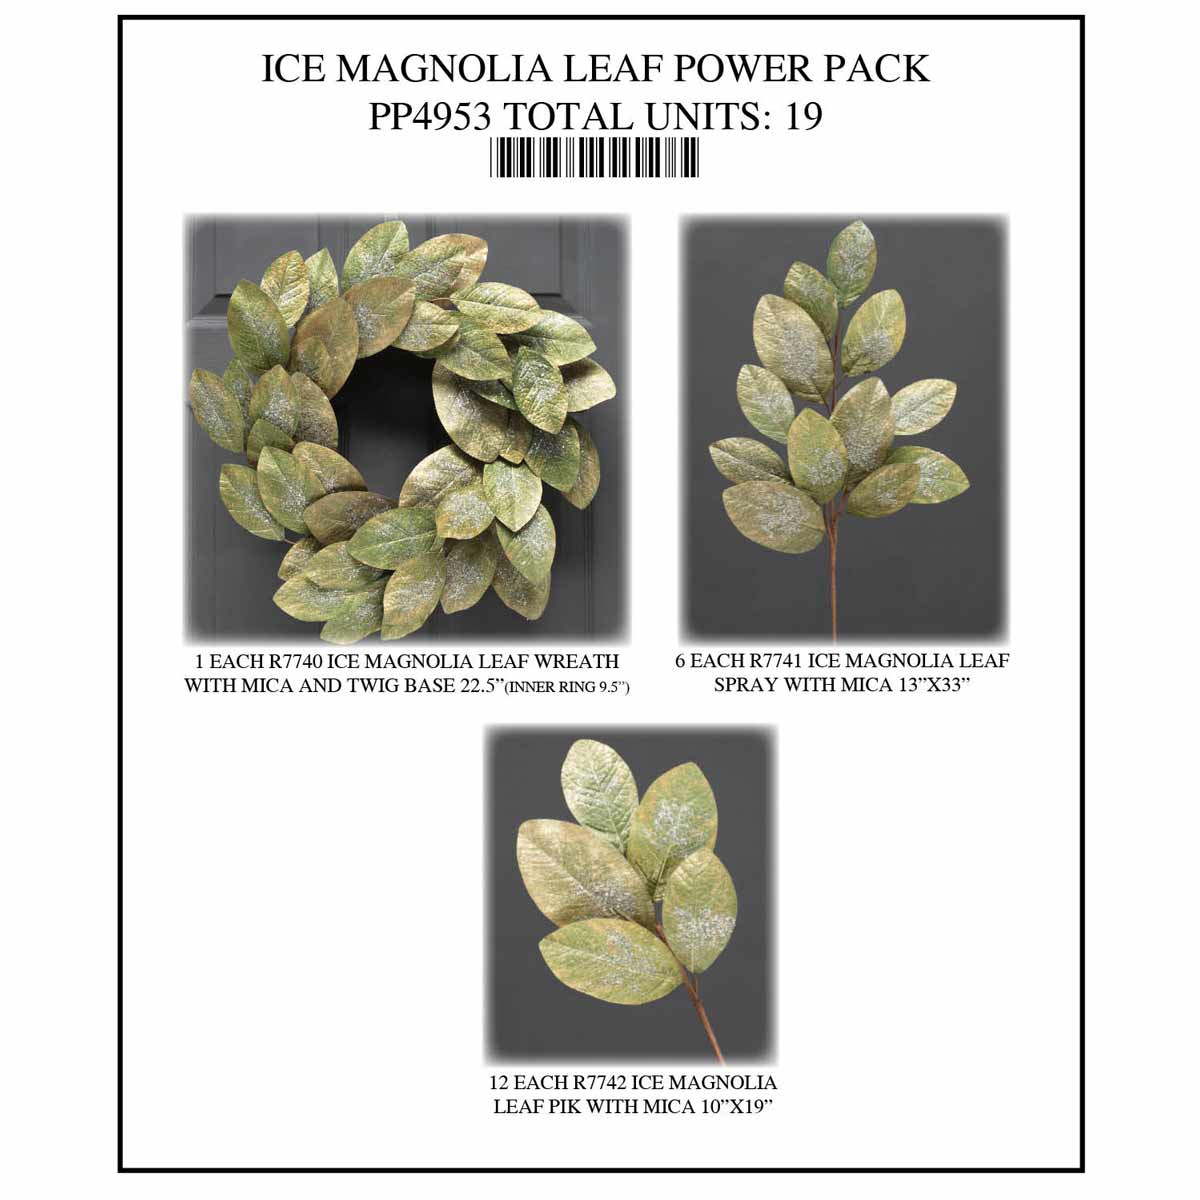 ICE MAGNOLIA LEAF POWER PACK 19 UNITS PP4953